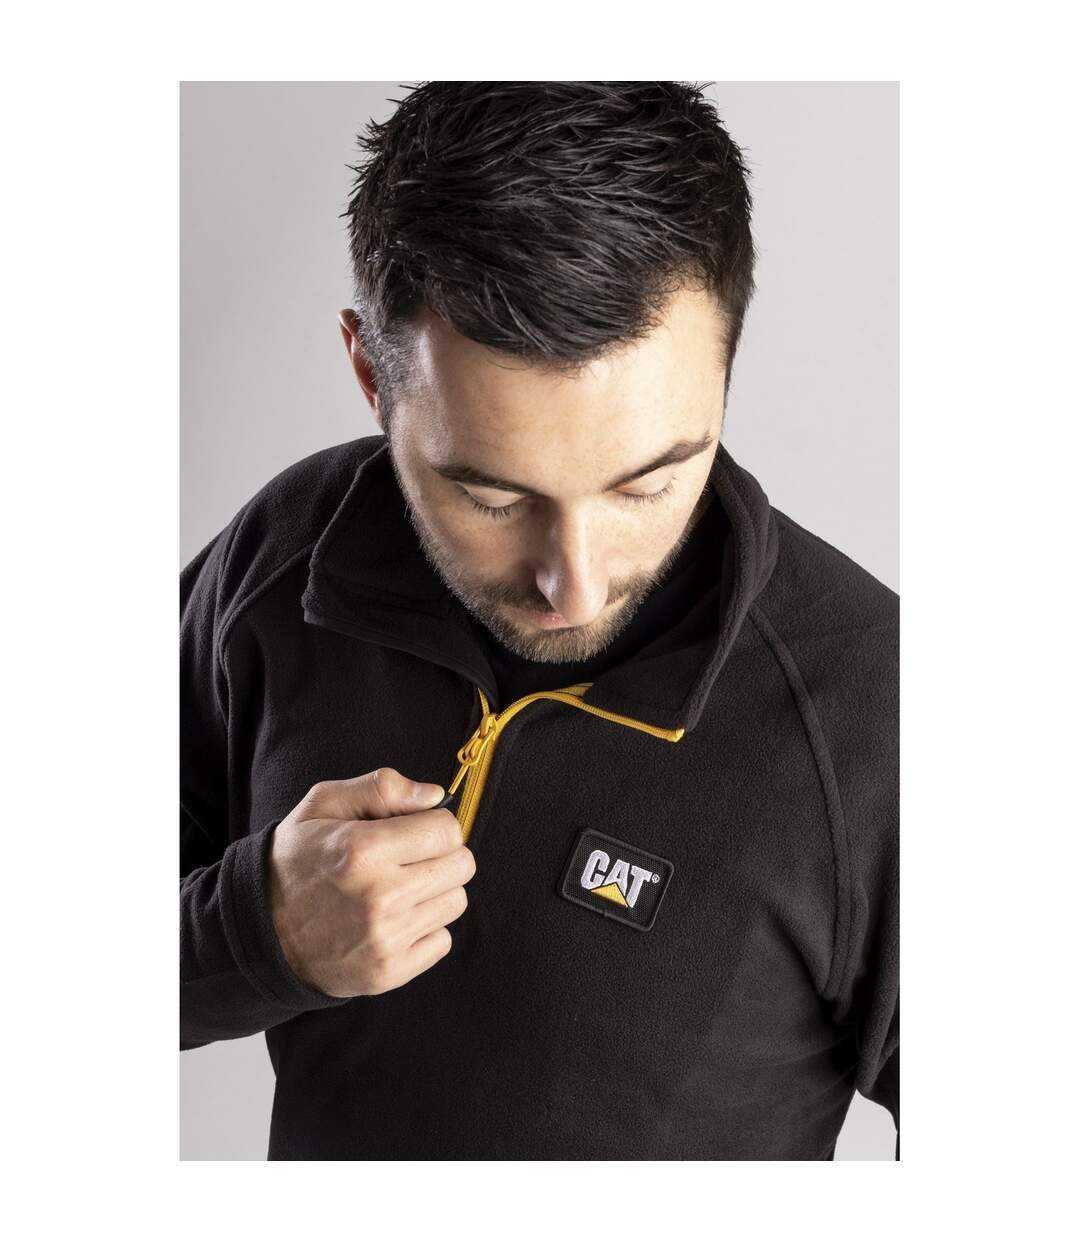 Caterpillar Mens Concord Fleece Pullover (Black) - UTFS5049